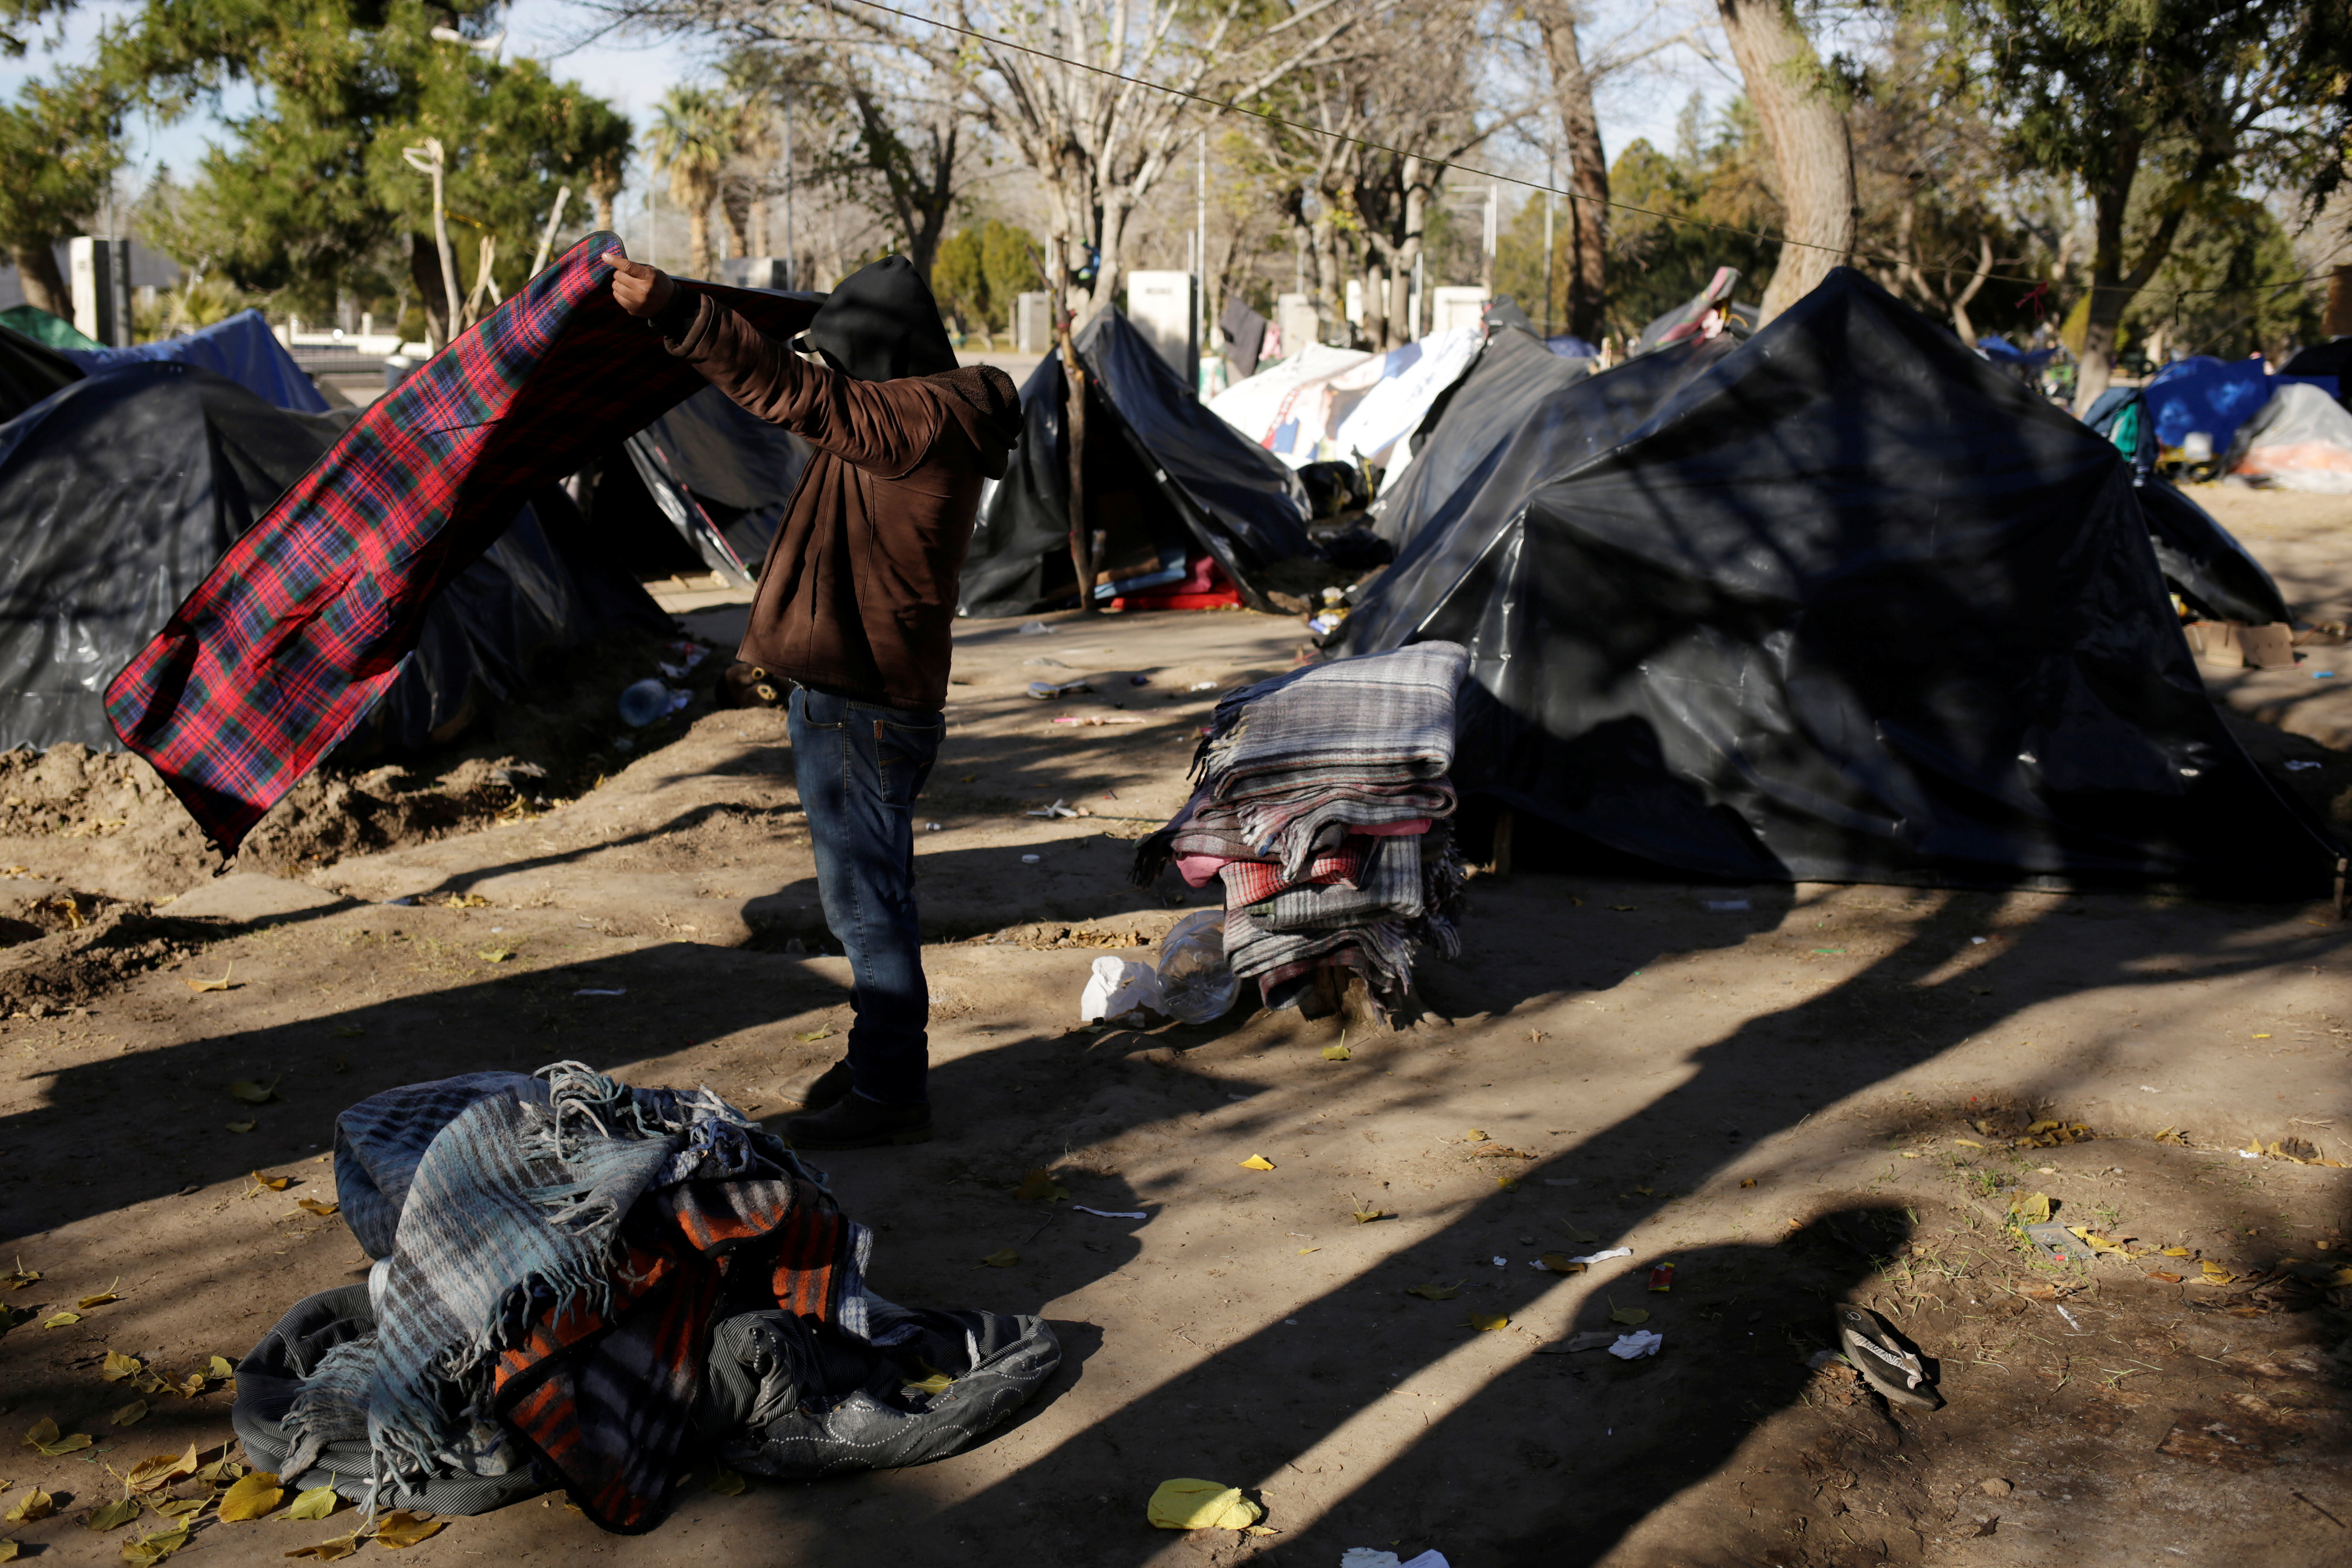 A Mexican man, who is fleeing from violence in his hometown and is currently camping near the Cordova-Americas international border crossing bridge while waiting to apply for asylum to the U.S., packs his belongings to move to a shelter as temperatures dropped below freezing in Ciudad Juarez, Mexico, December 18, 2019. REUTERS/Jose Luis Gonzalez